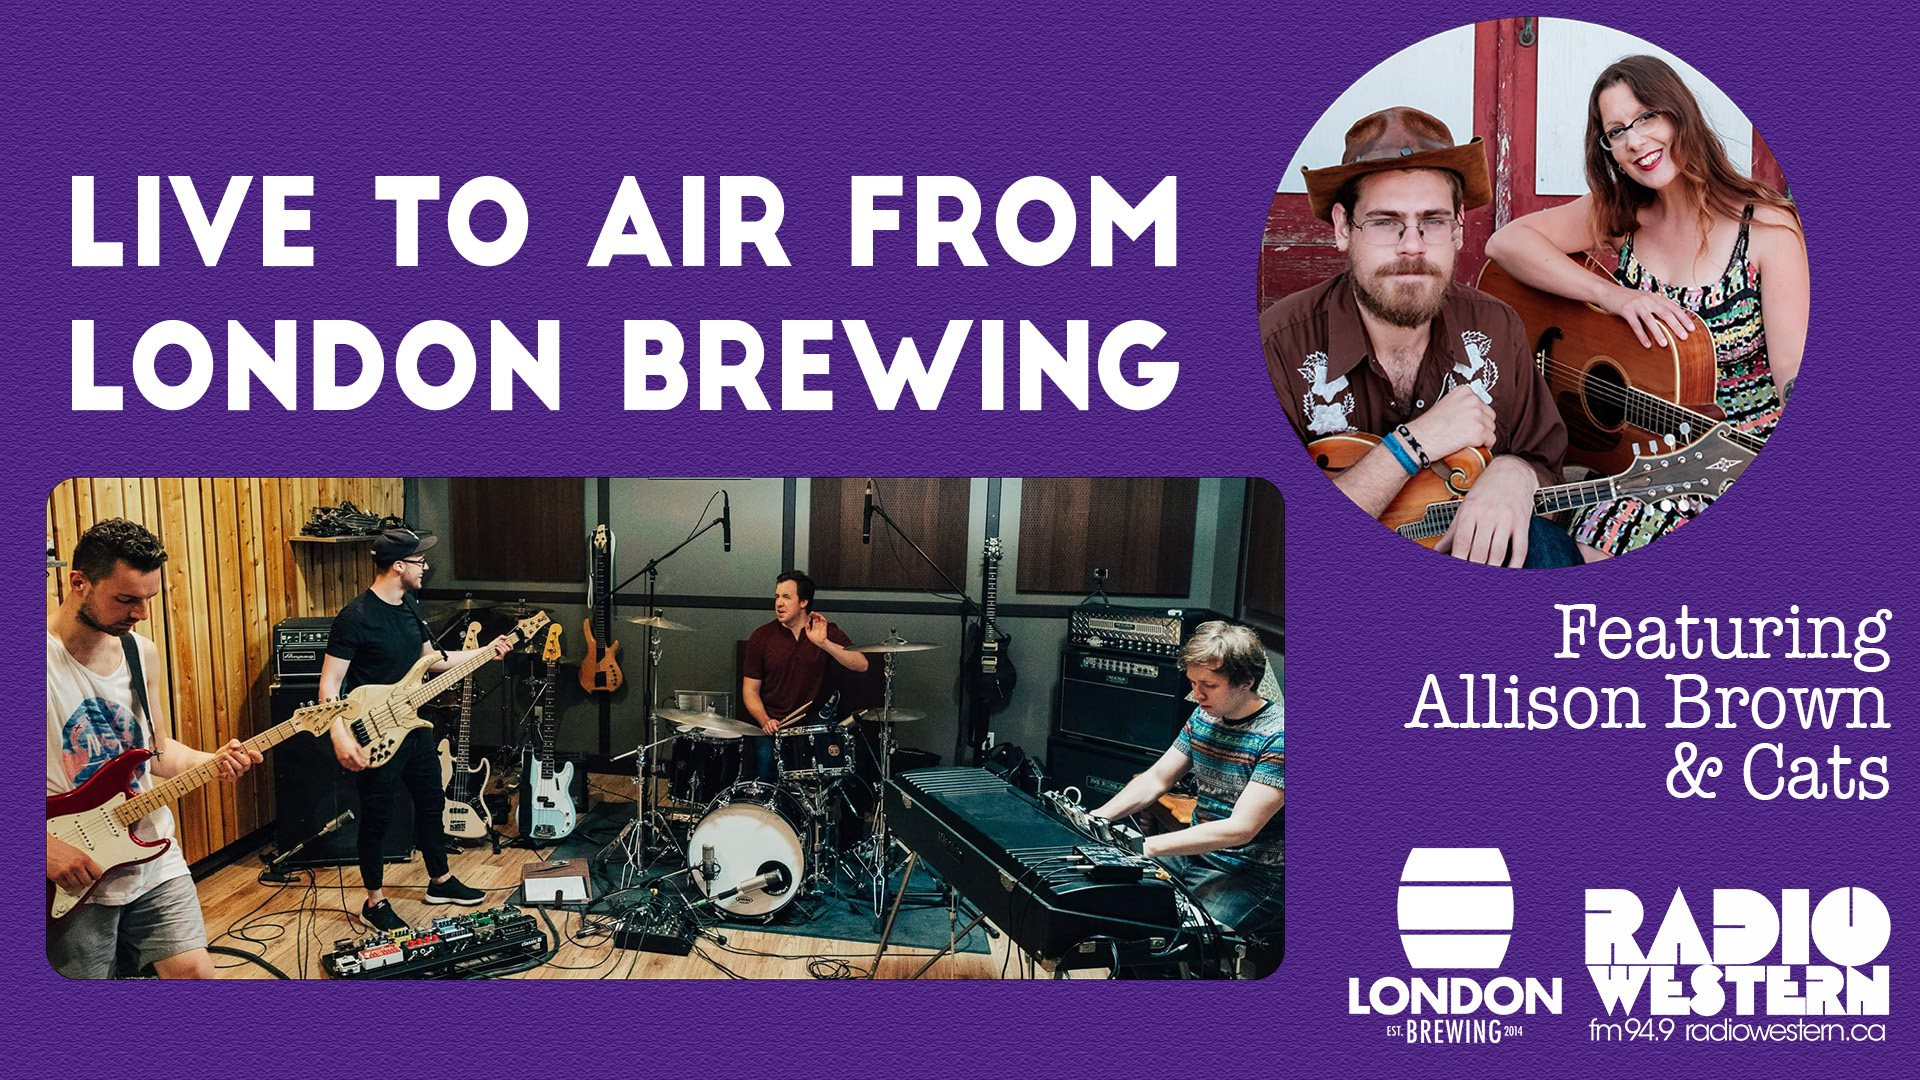 Radio Western Live to Air From London Brewing